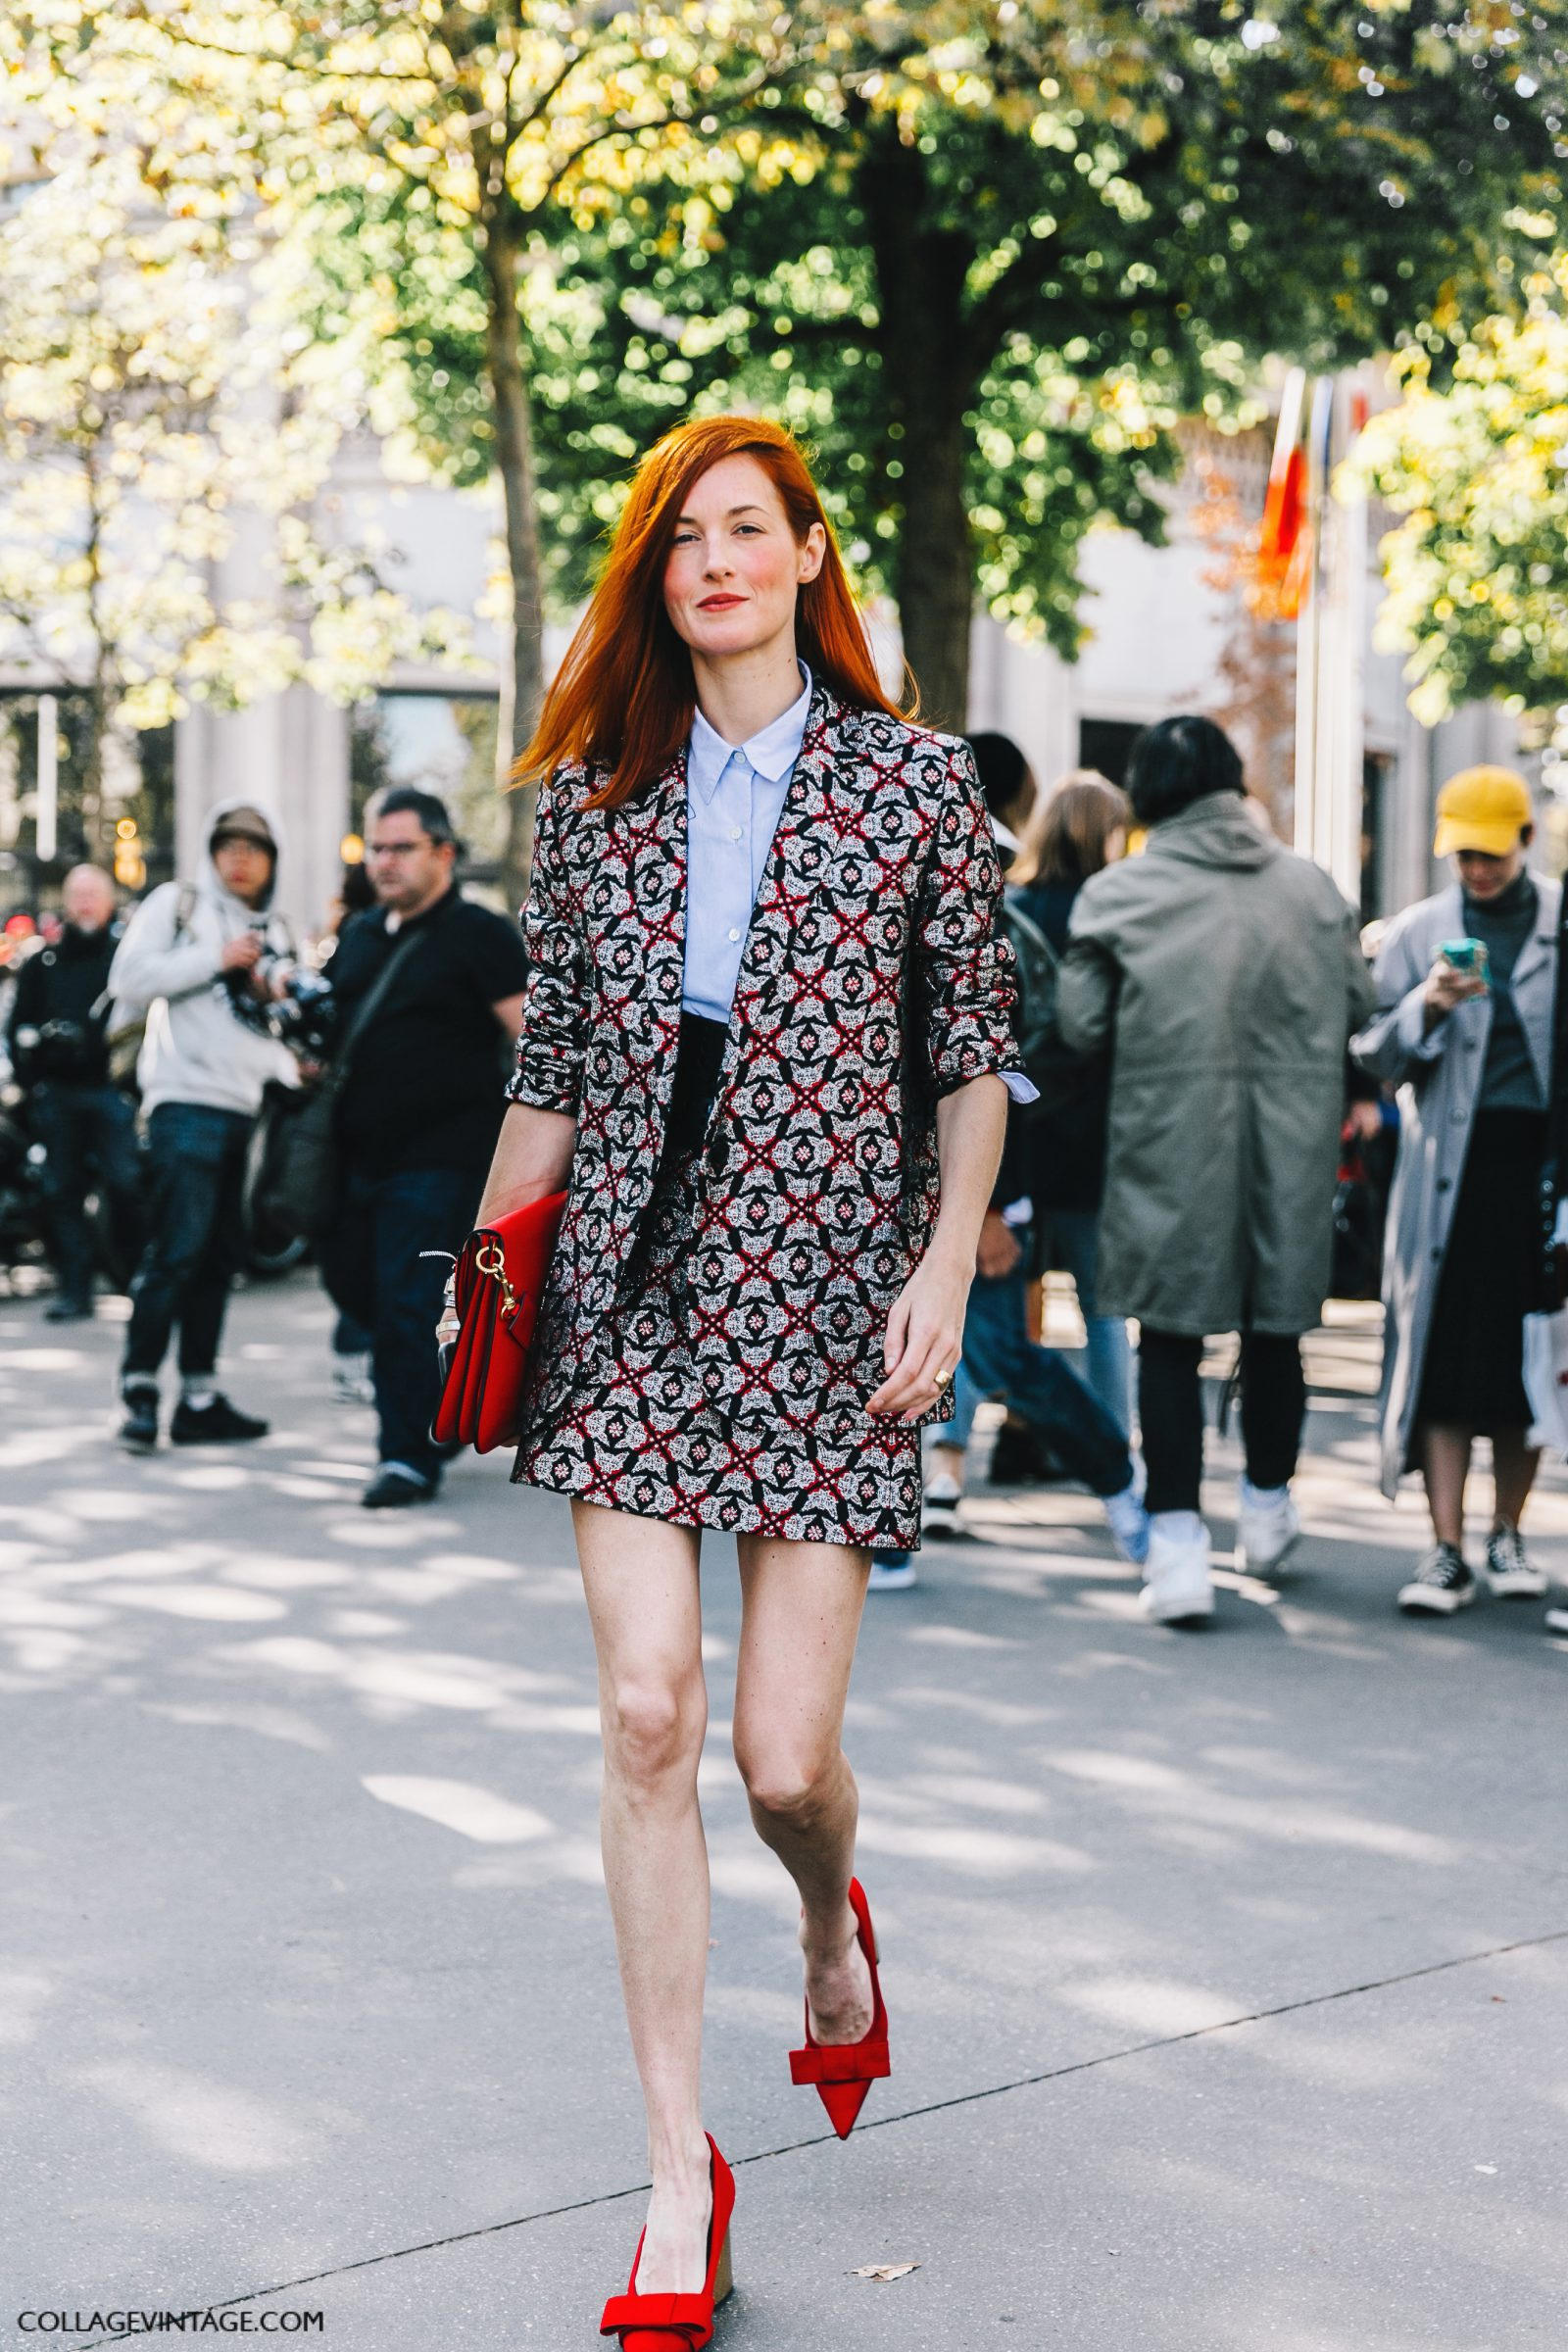 pfw-paris_fashion_week_ss17-street_style-outfit-collage_vintage-louis_vuitton-miu_miu-94